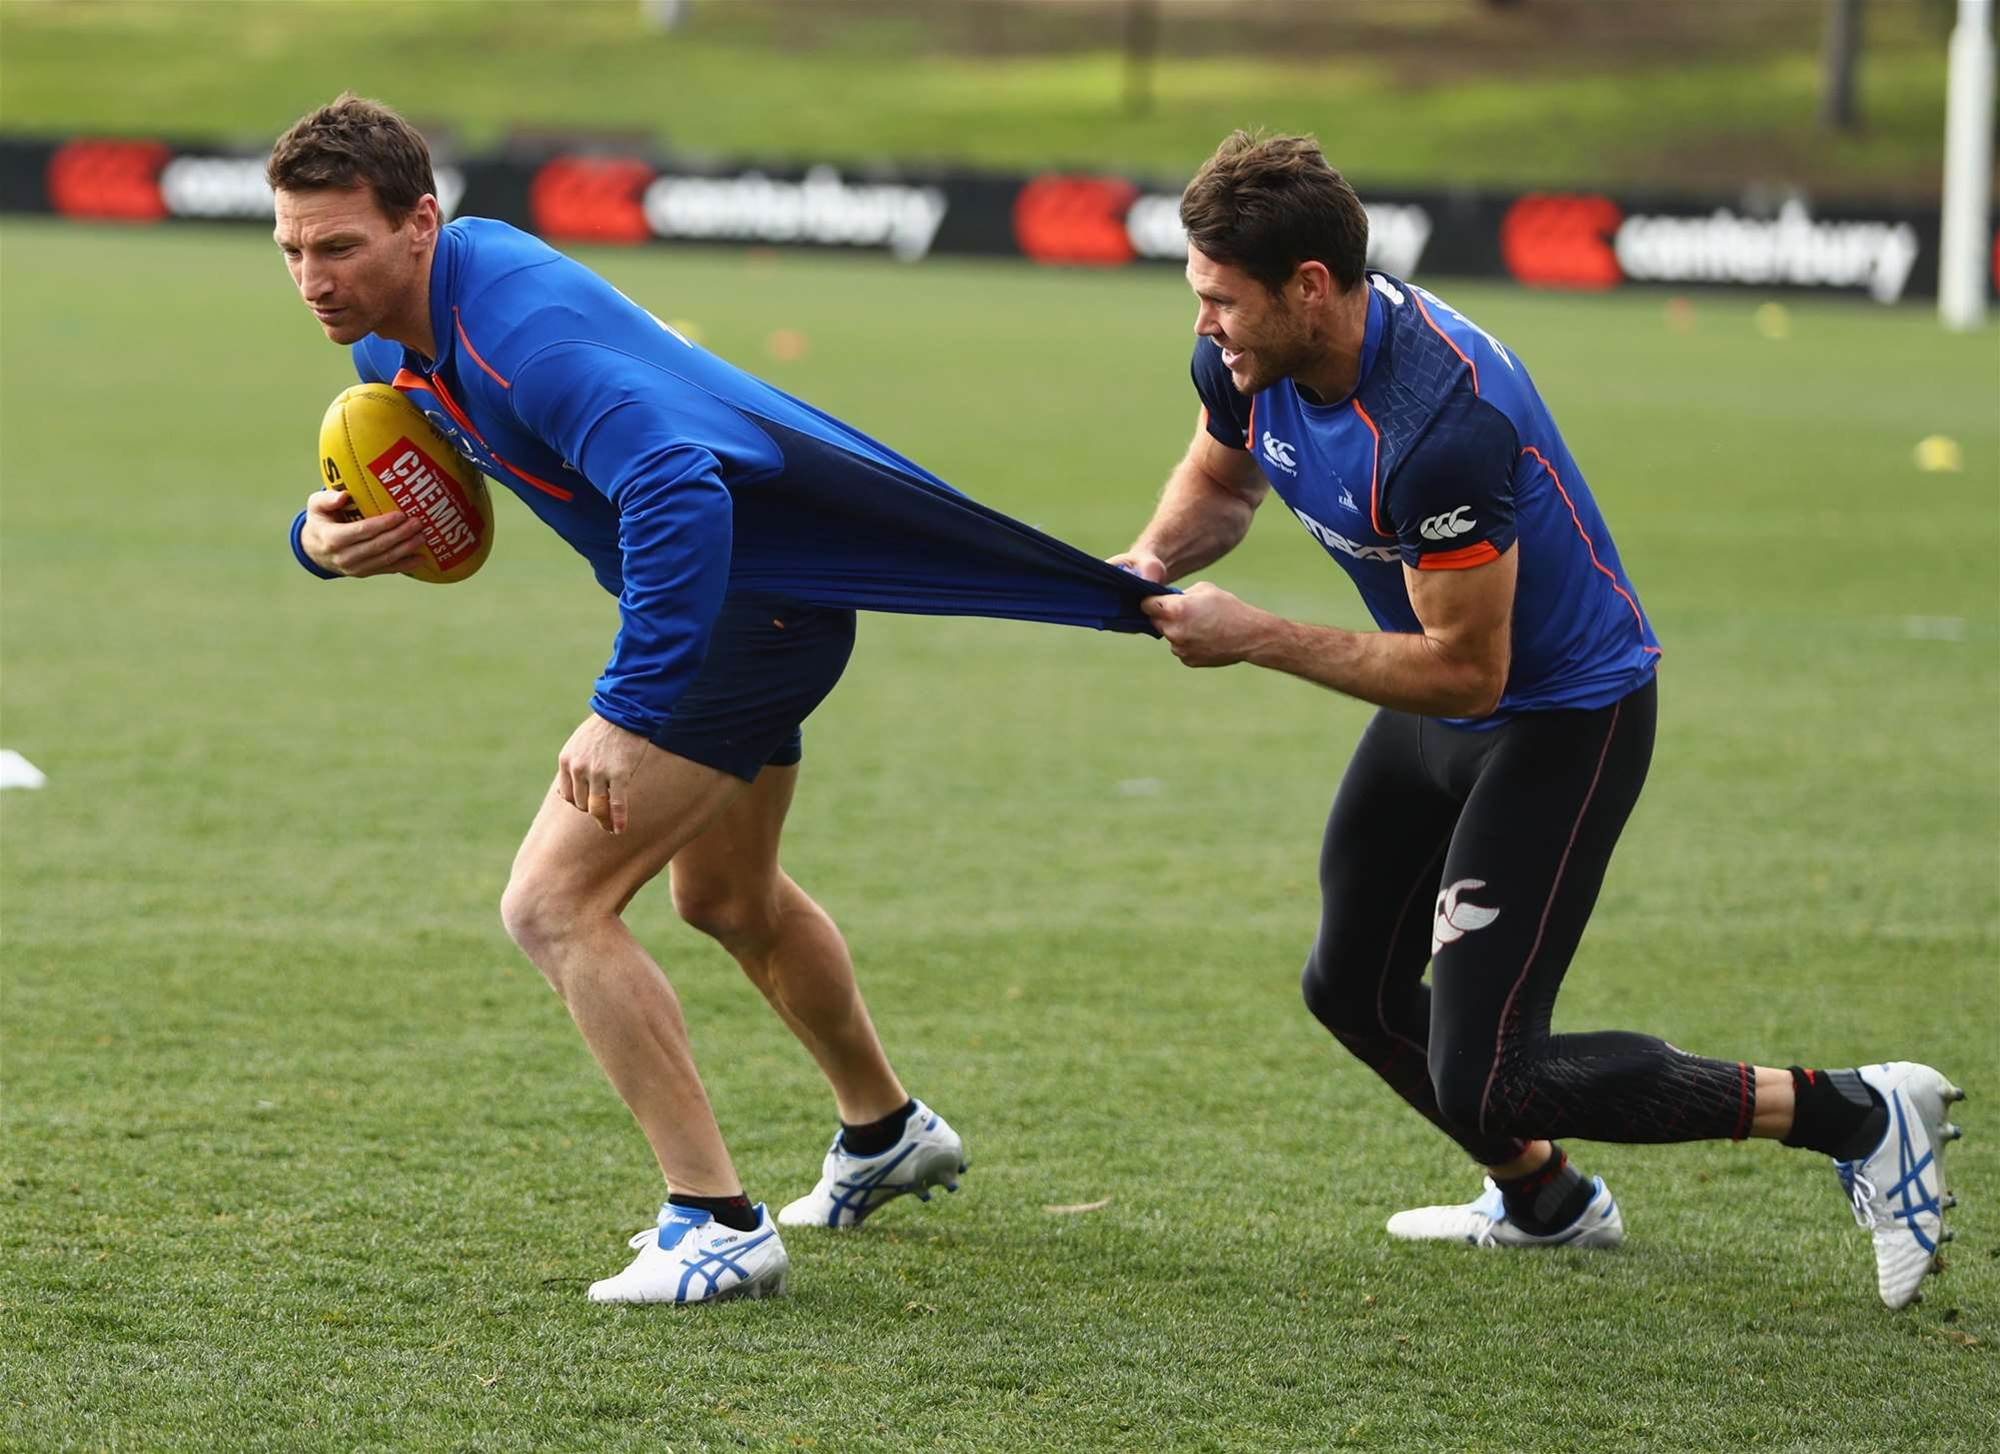 Roos get ready for the Pies